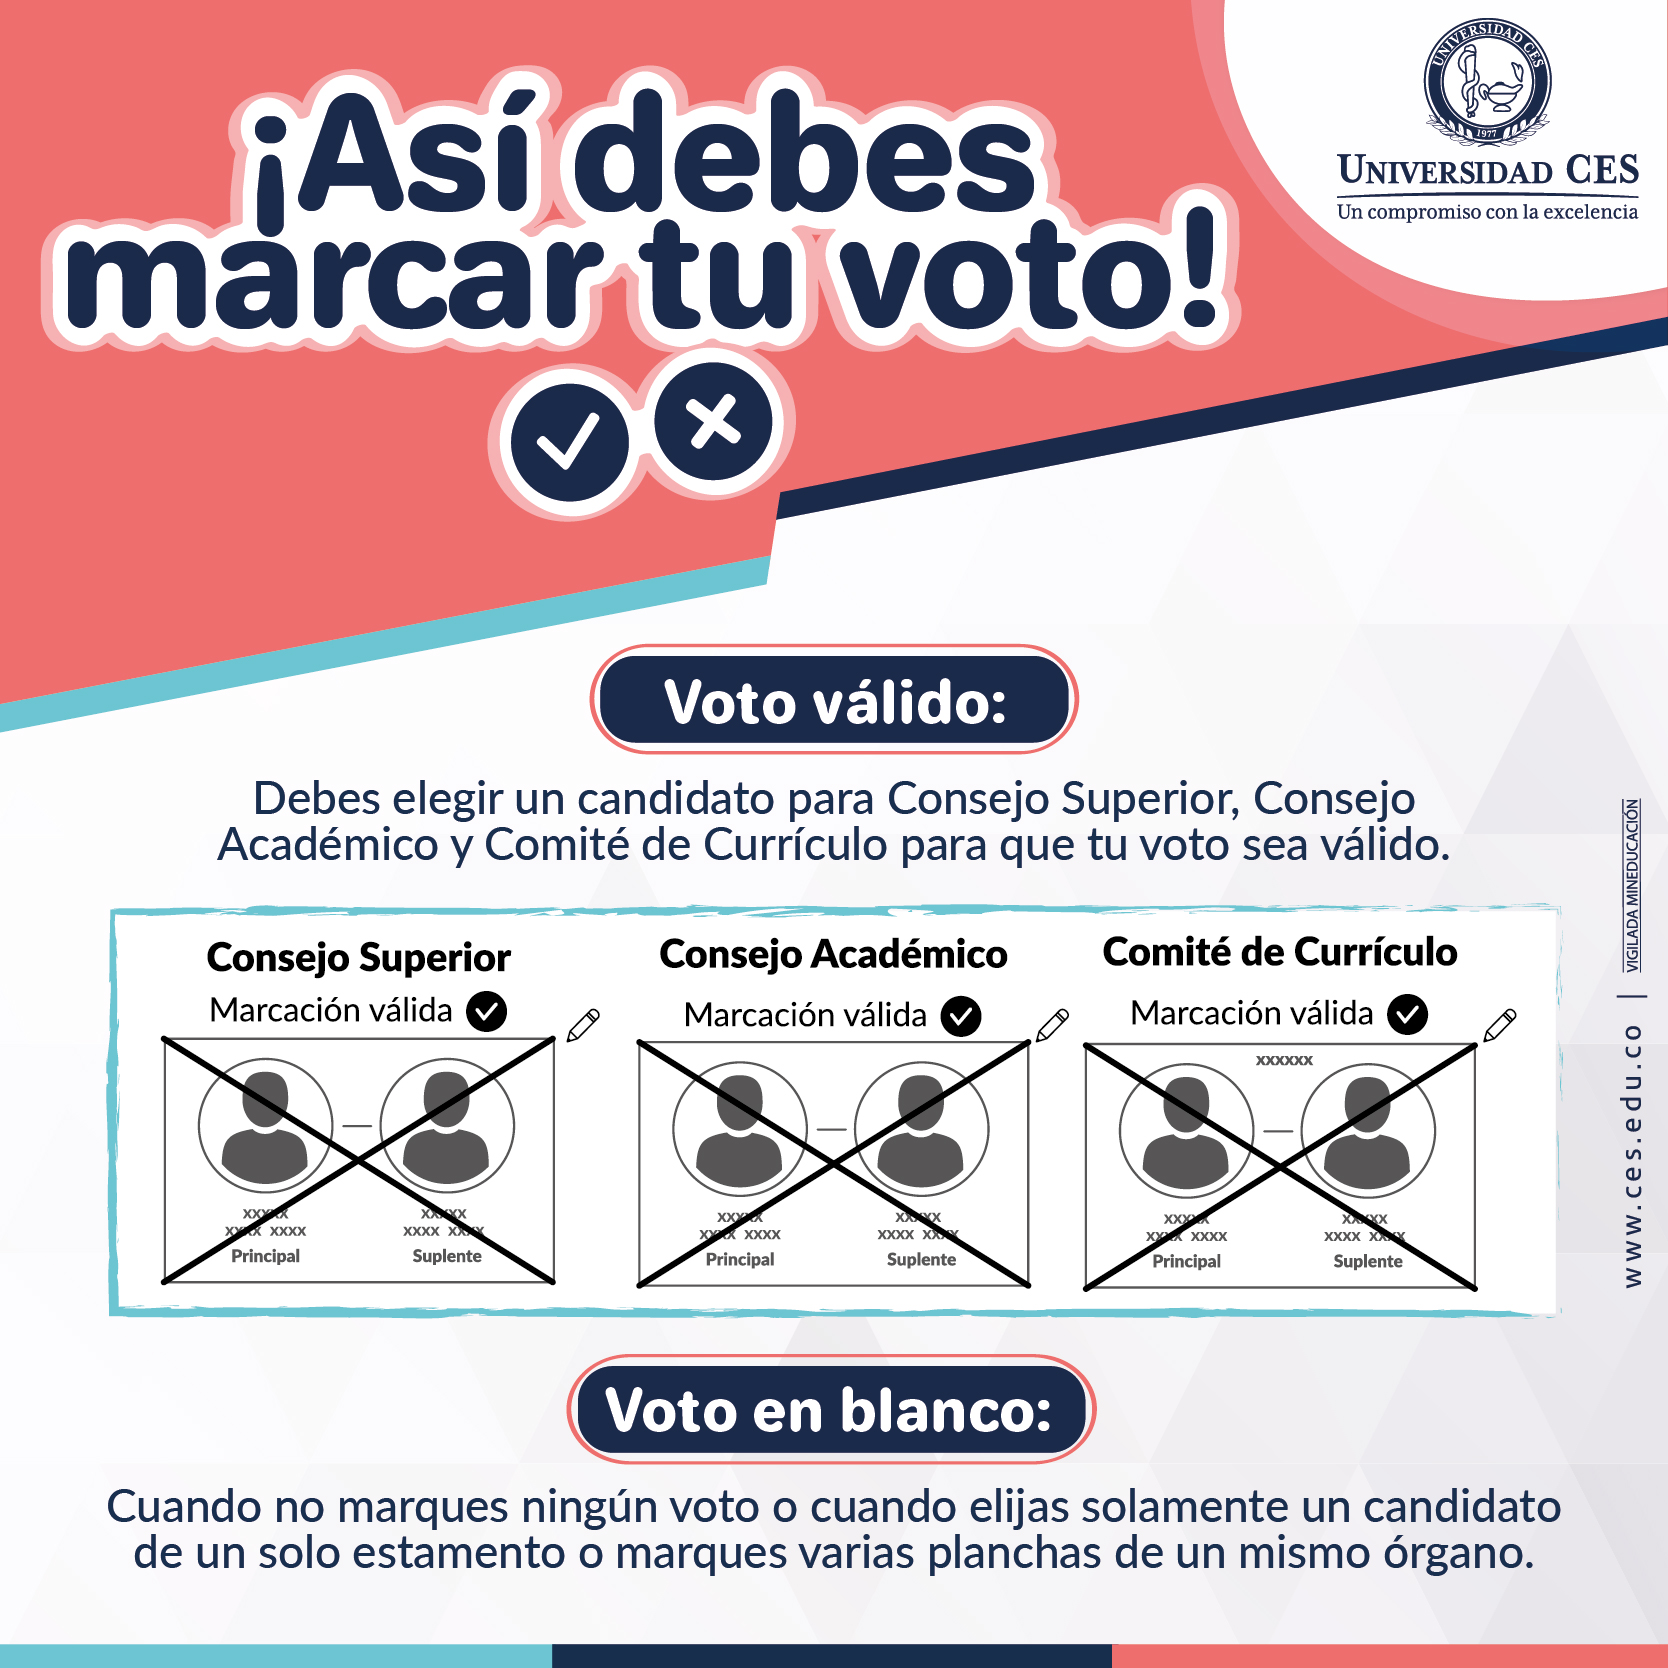 Image, this is how you should mark your vote - 2020 student representative elections